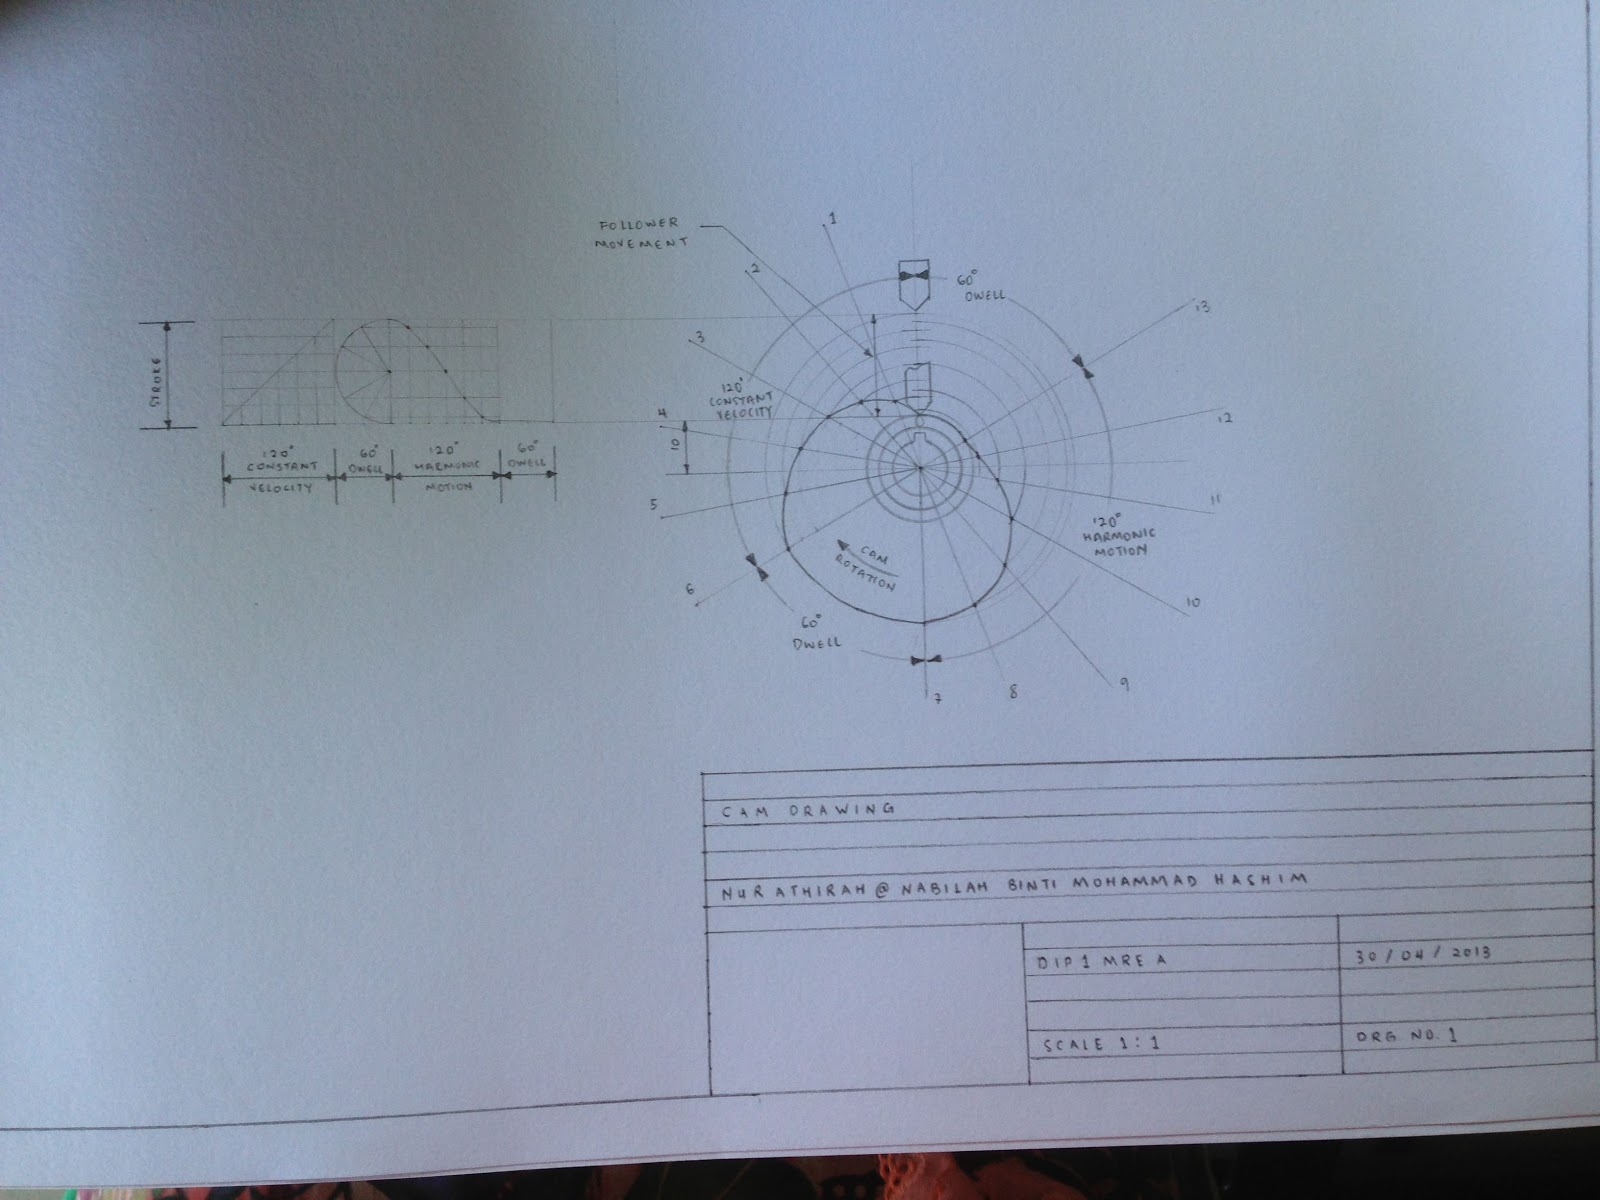 school life engineering assignment 2 task 2 assembly drawing